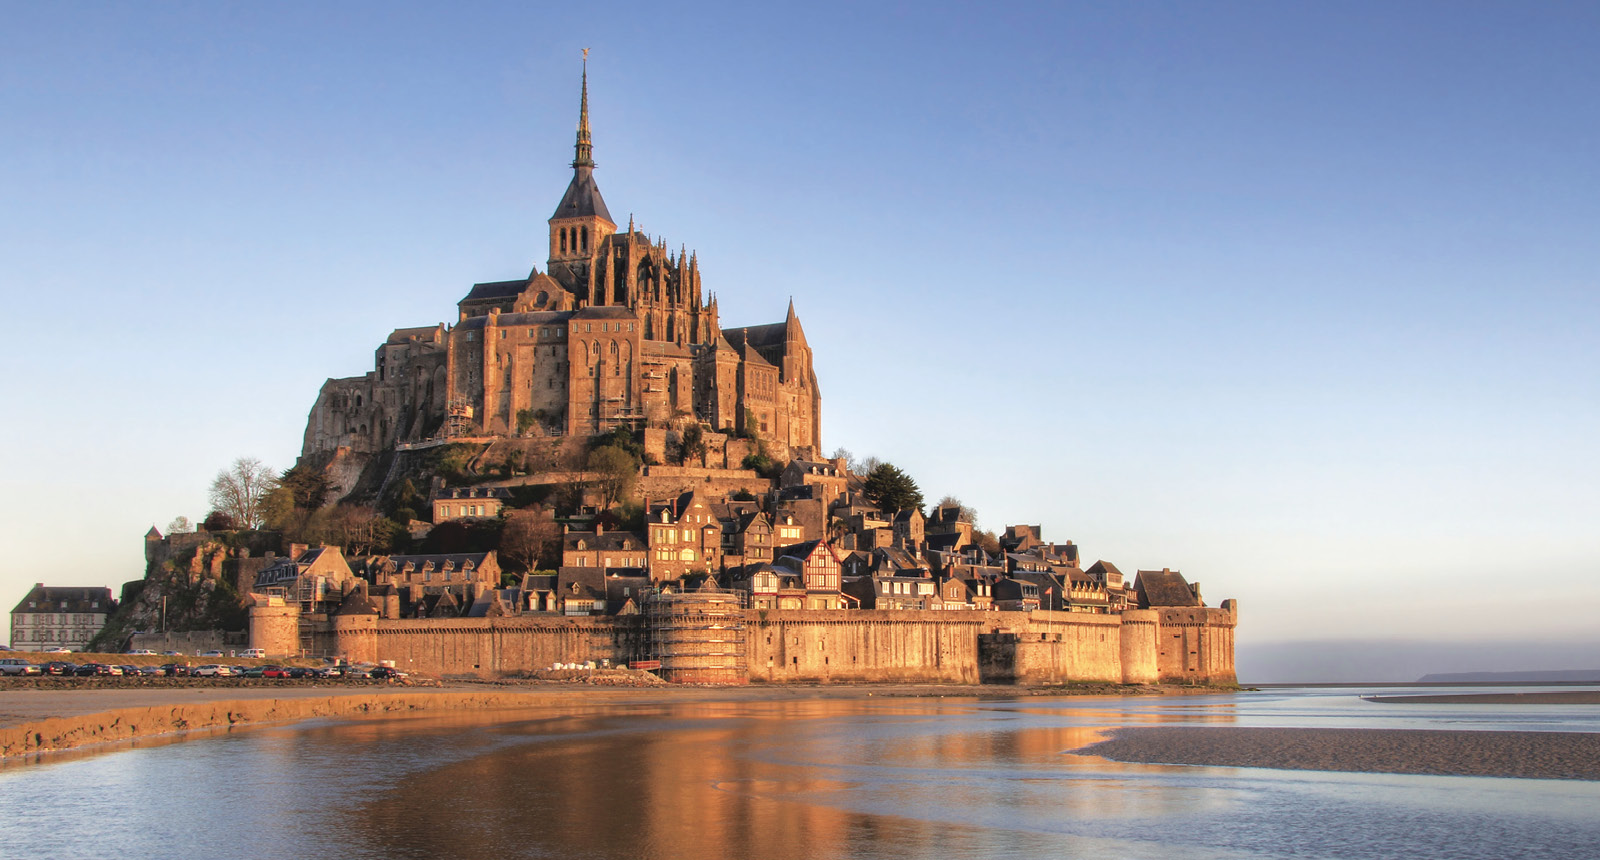 Mont Saint-Michel island commune in Normandy